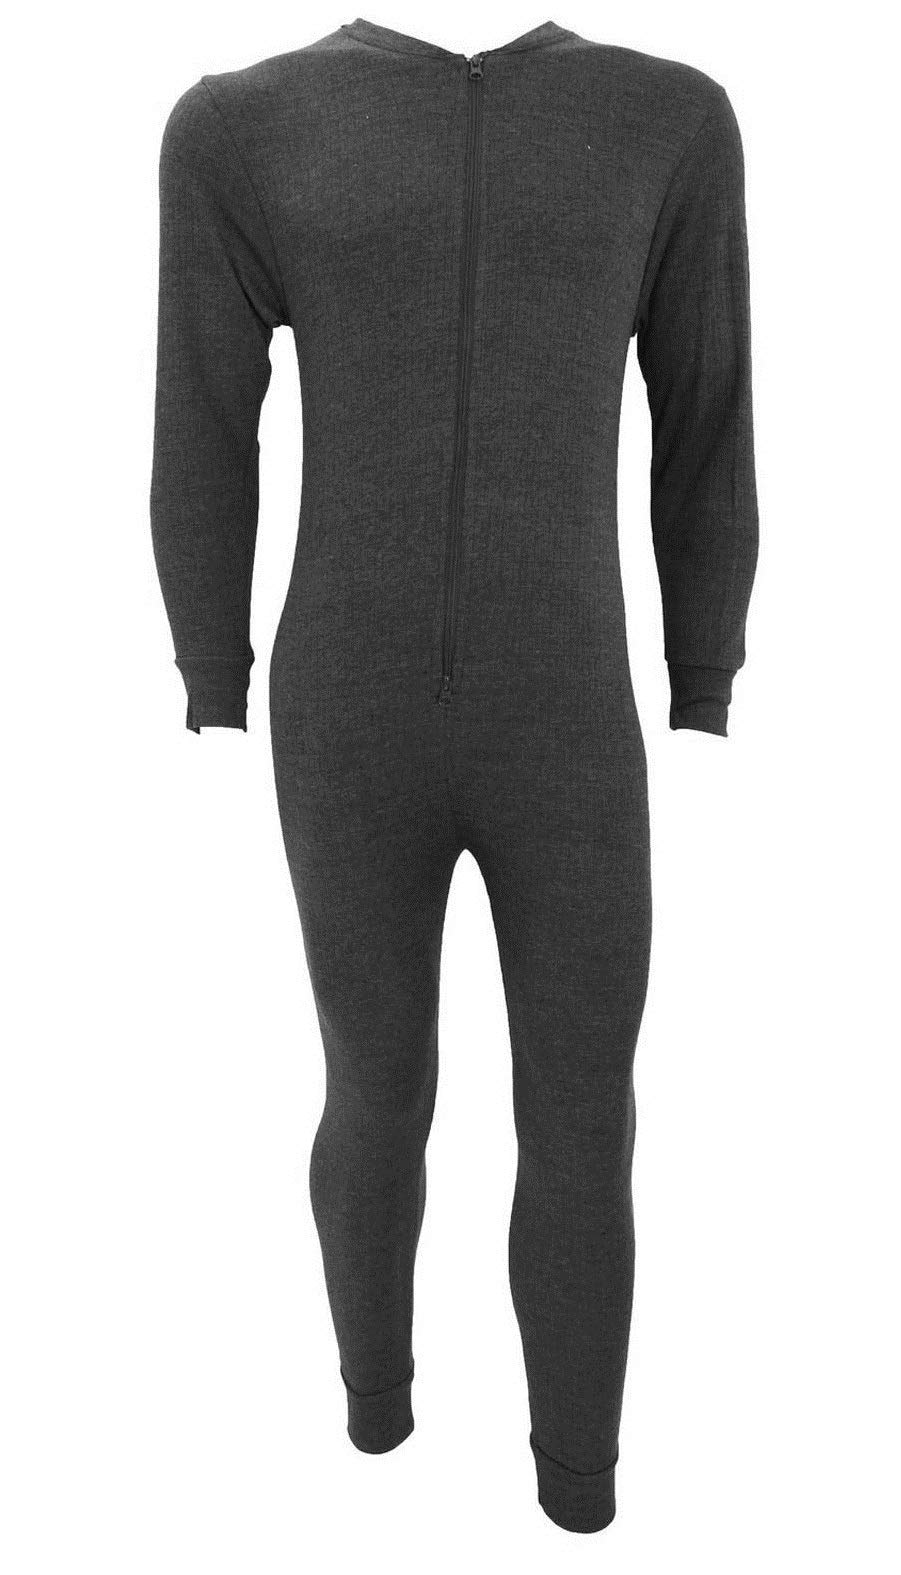 New Mens Thermal Onesie All in One Underwear Zip-up Suit Baselayer Ski S-XXL Charcoal Grey by Fashion Oasis